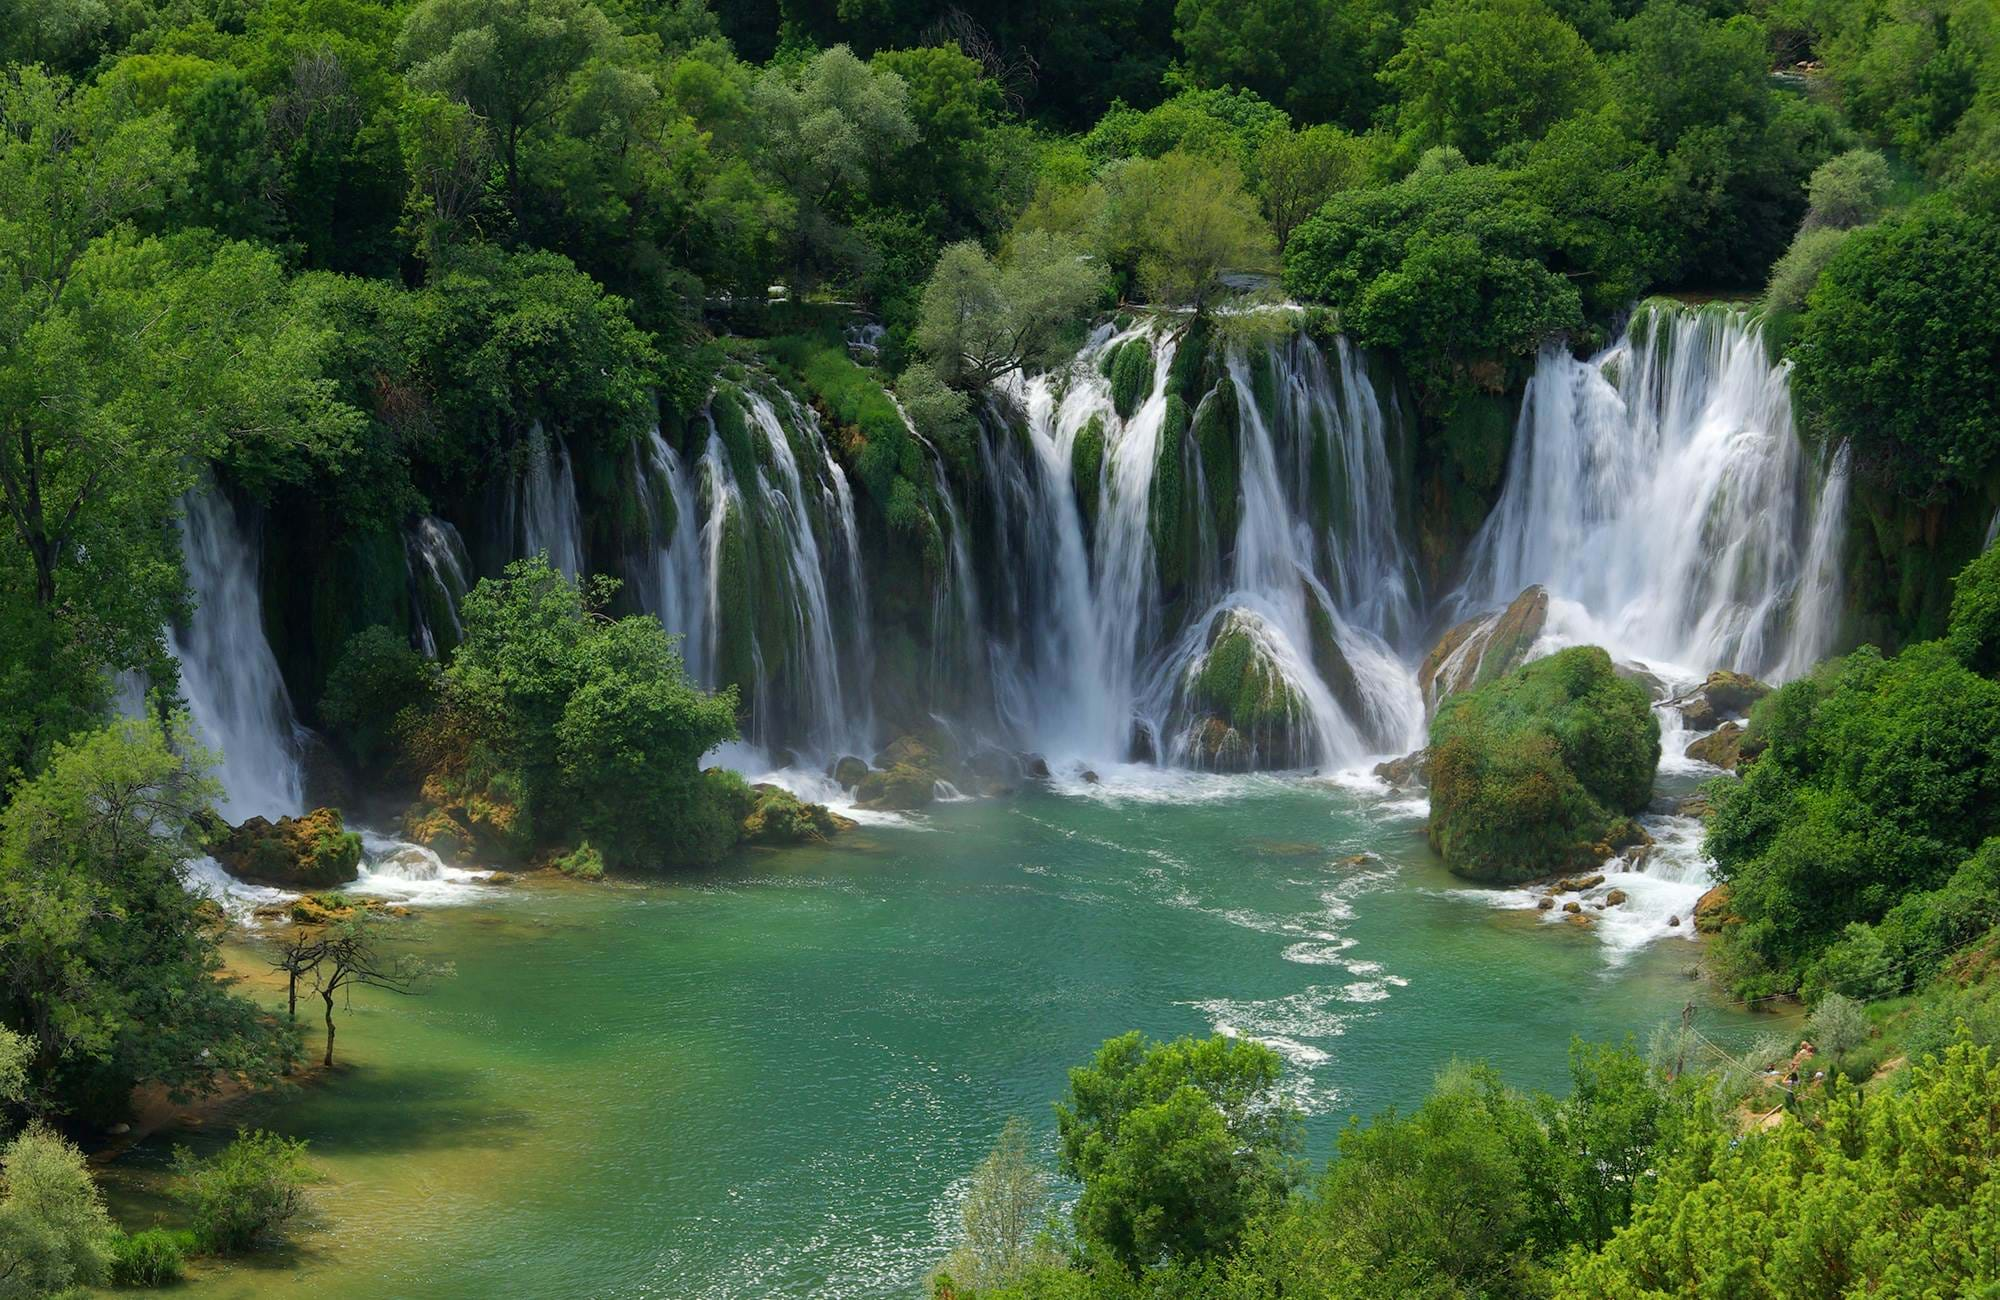 Spectacular nature awaits you in balkan